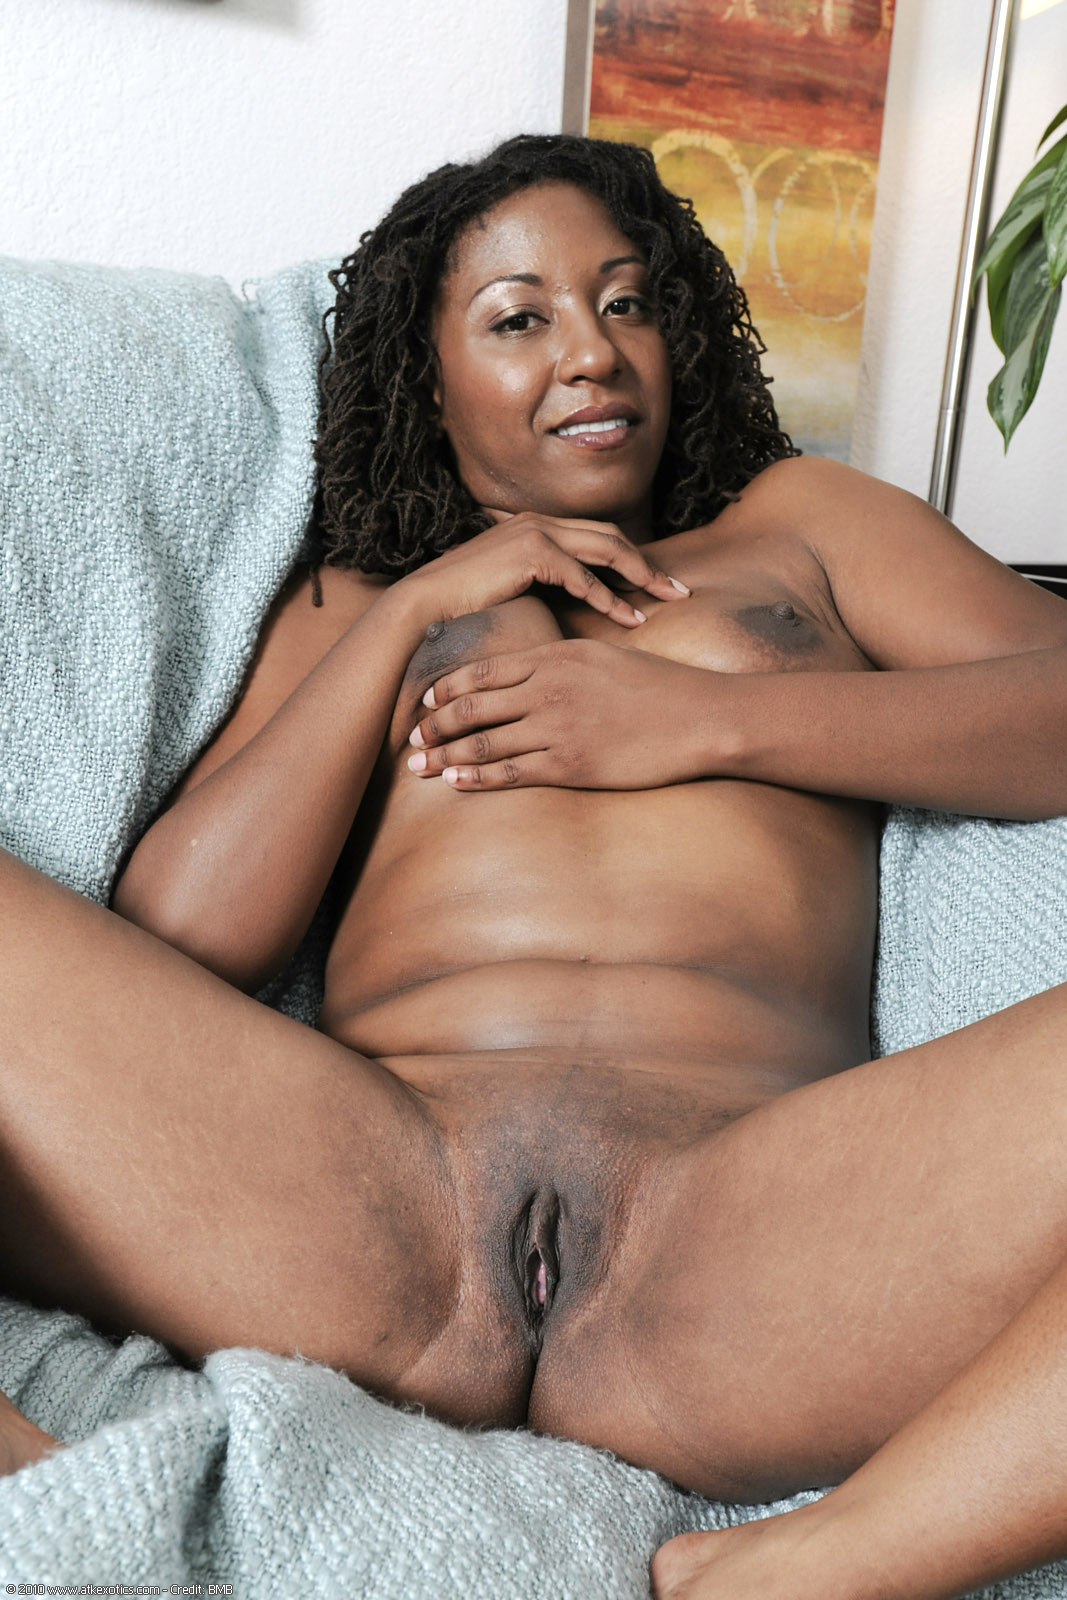 Real ebony girl mature like Capri